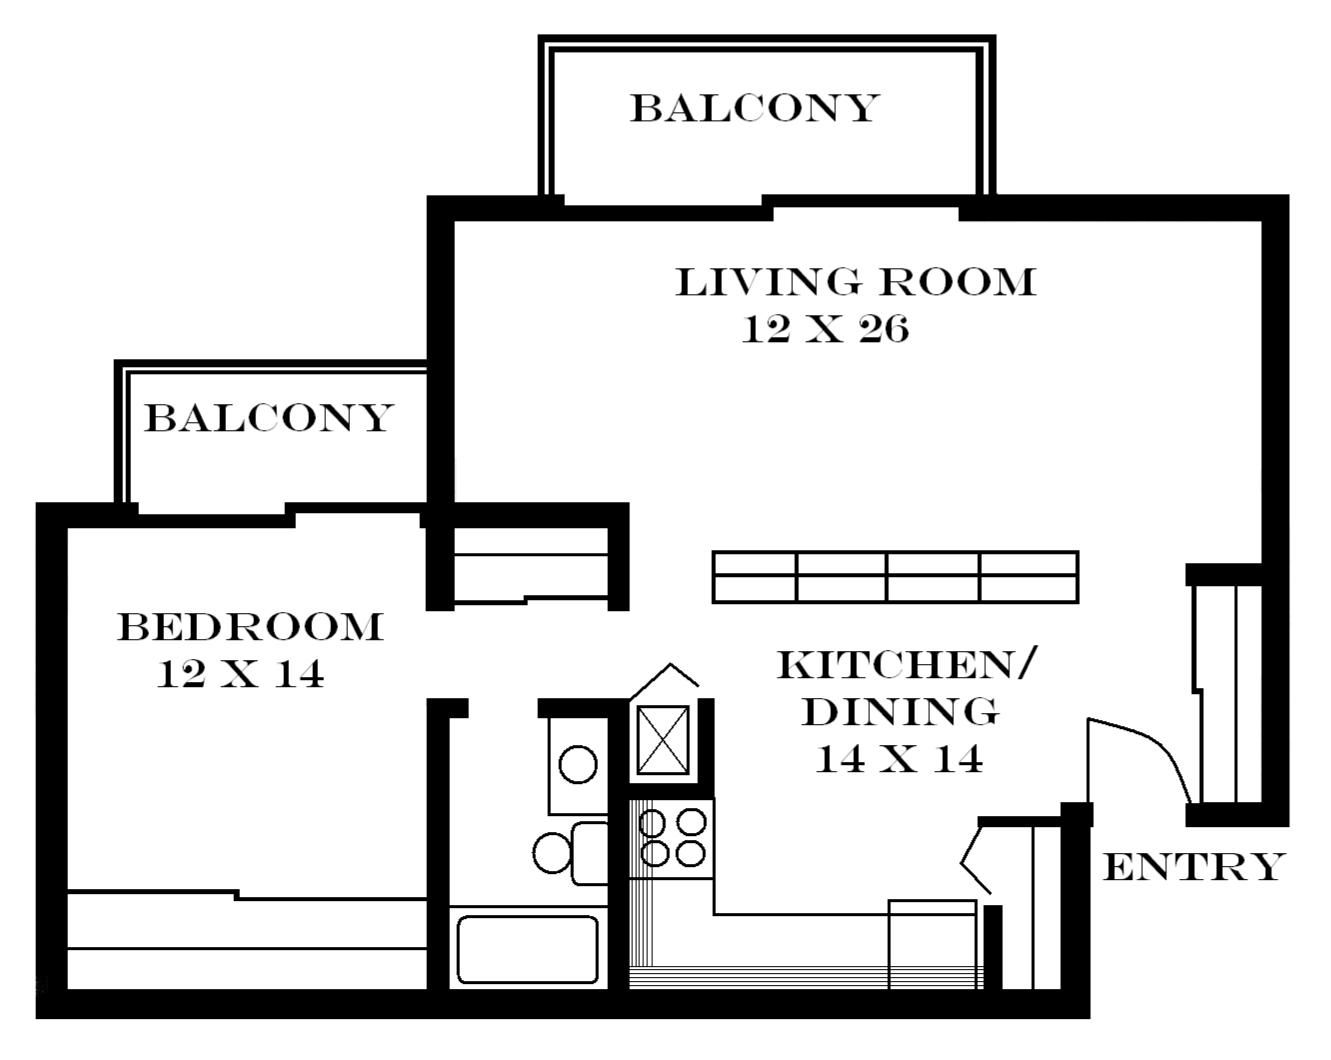 Beau Awesome Small 1 Bedroom Apartment Floor Plans With Apartment One Bedroom  Open Floor Studio Apartment Layouts Floor Plans Part Of Small 1 Bedroom  Apartment ...